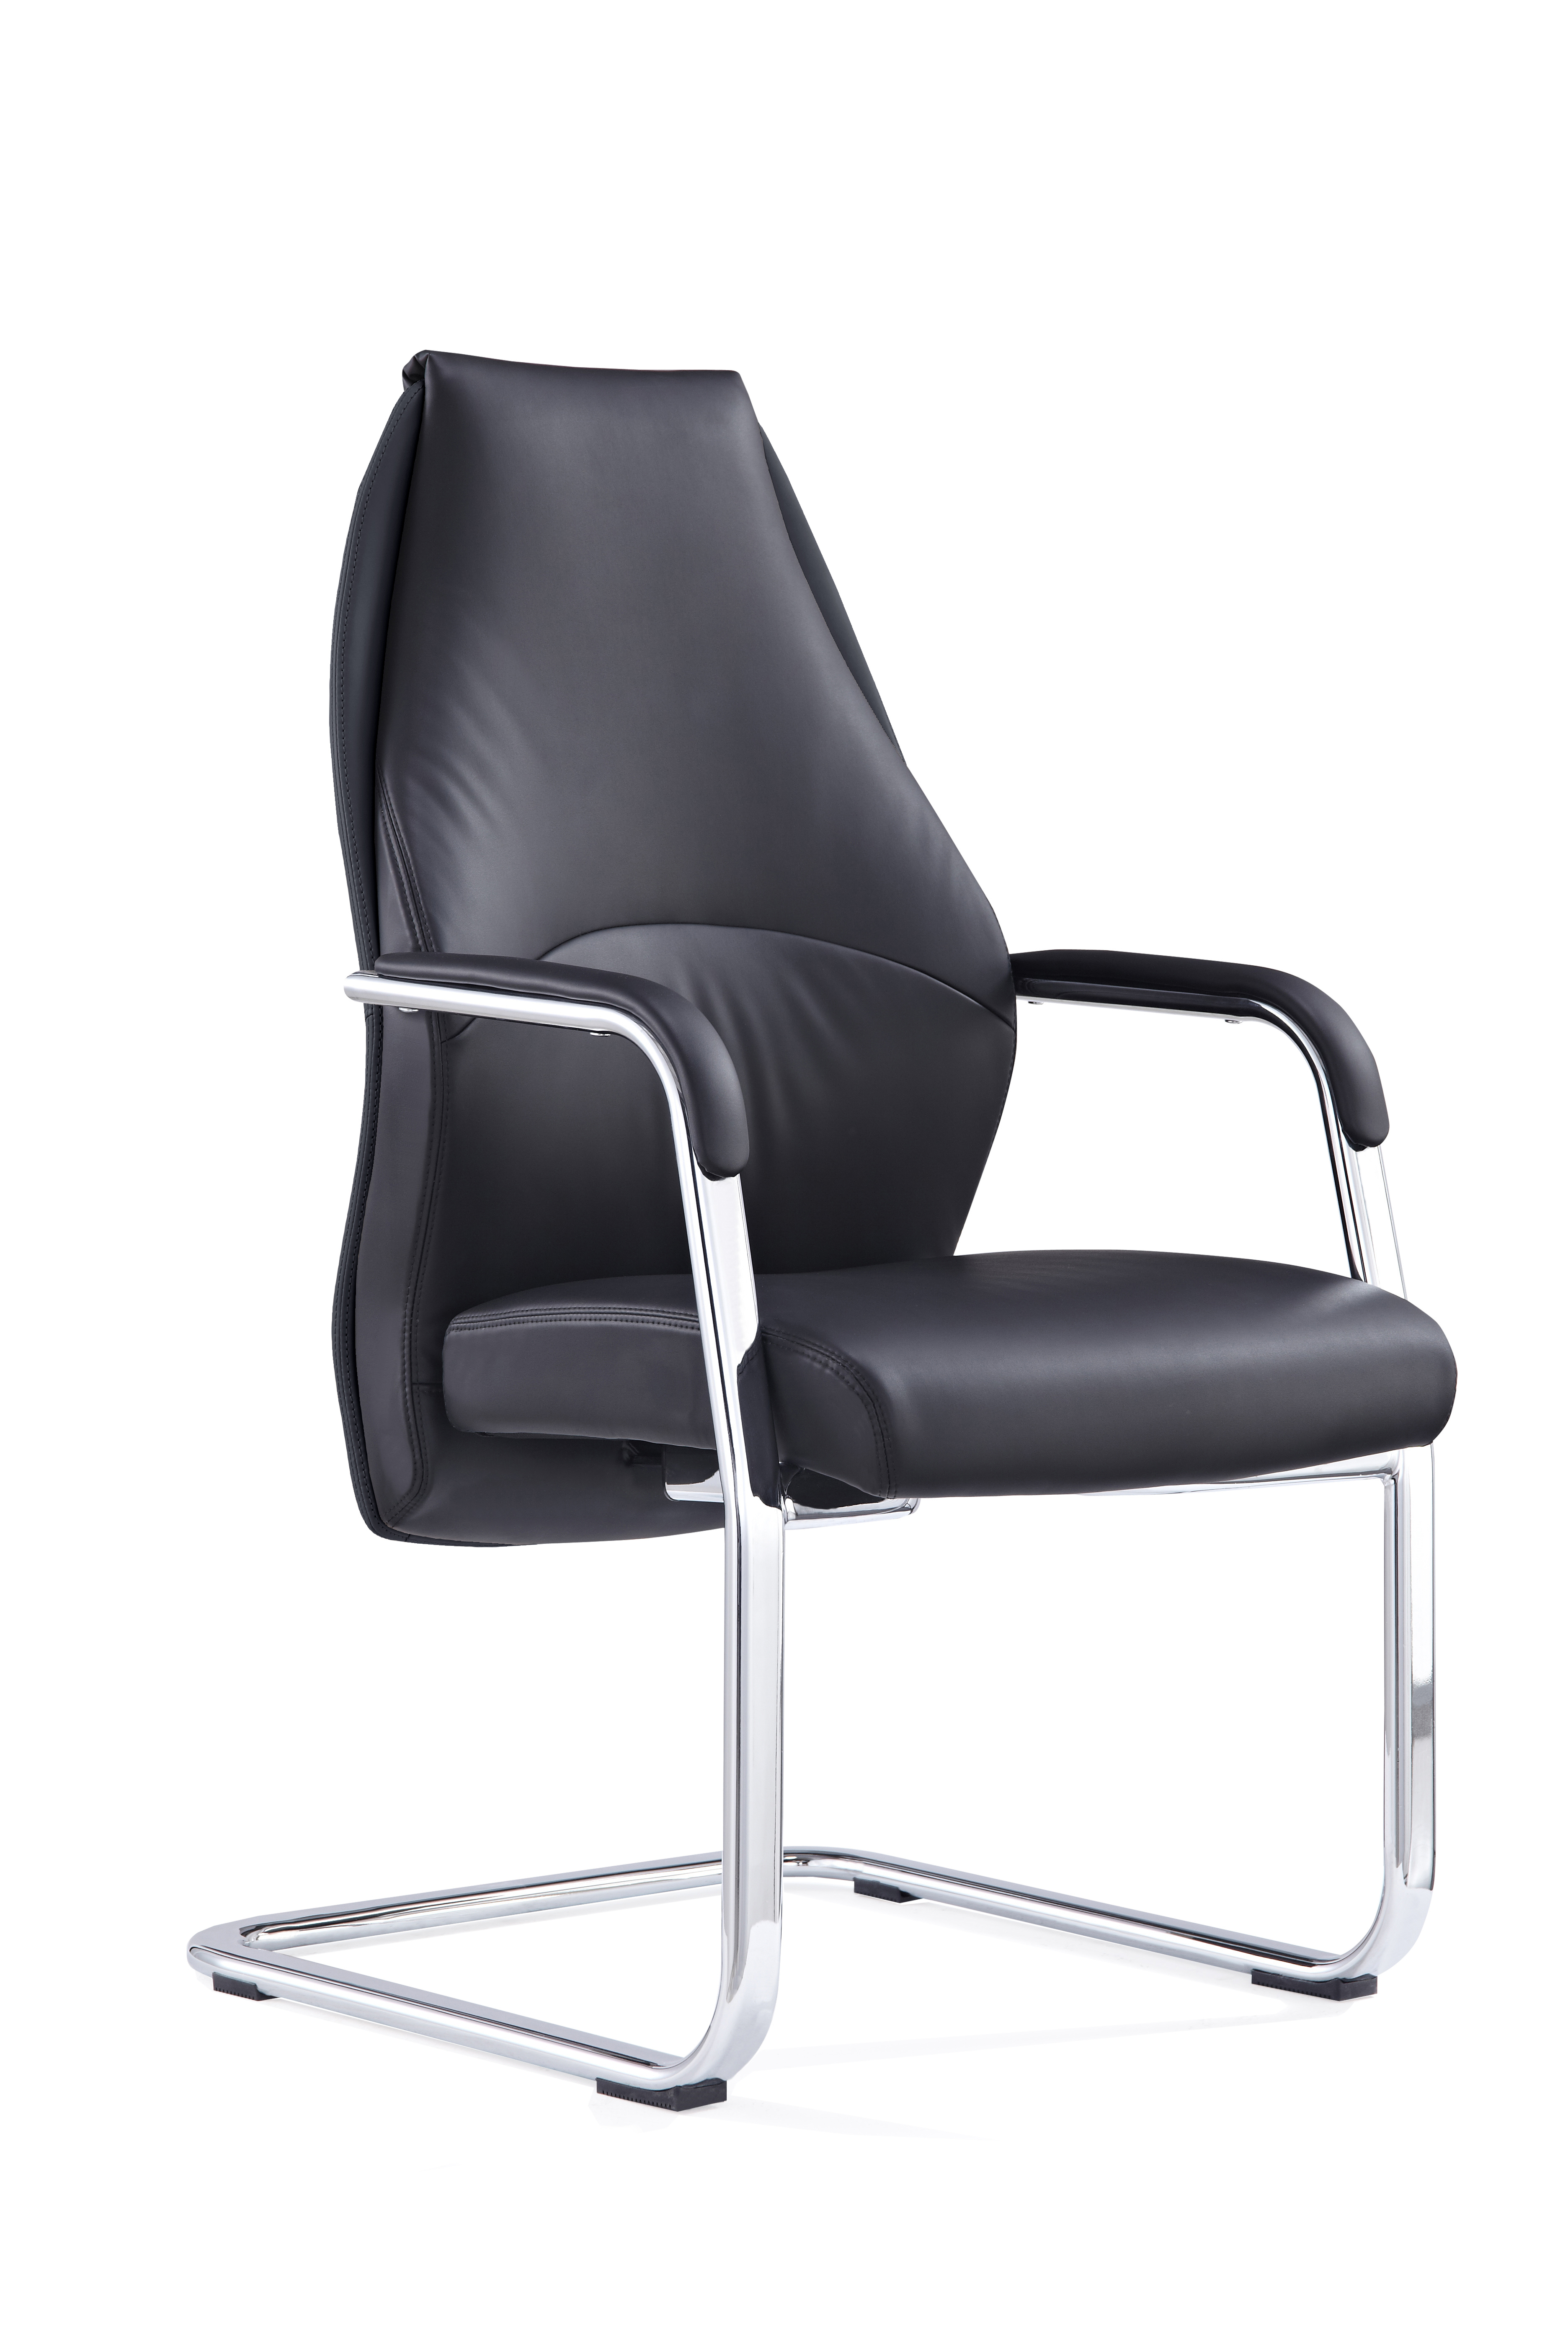 Mien Black Cantilever Chair BR000211